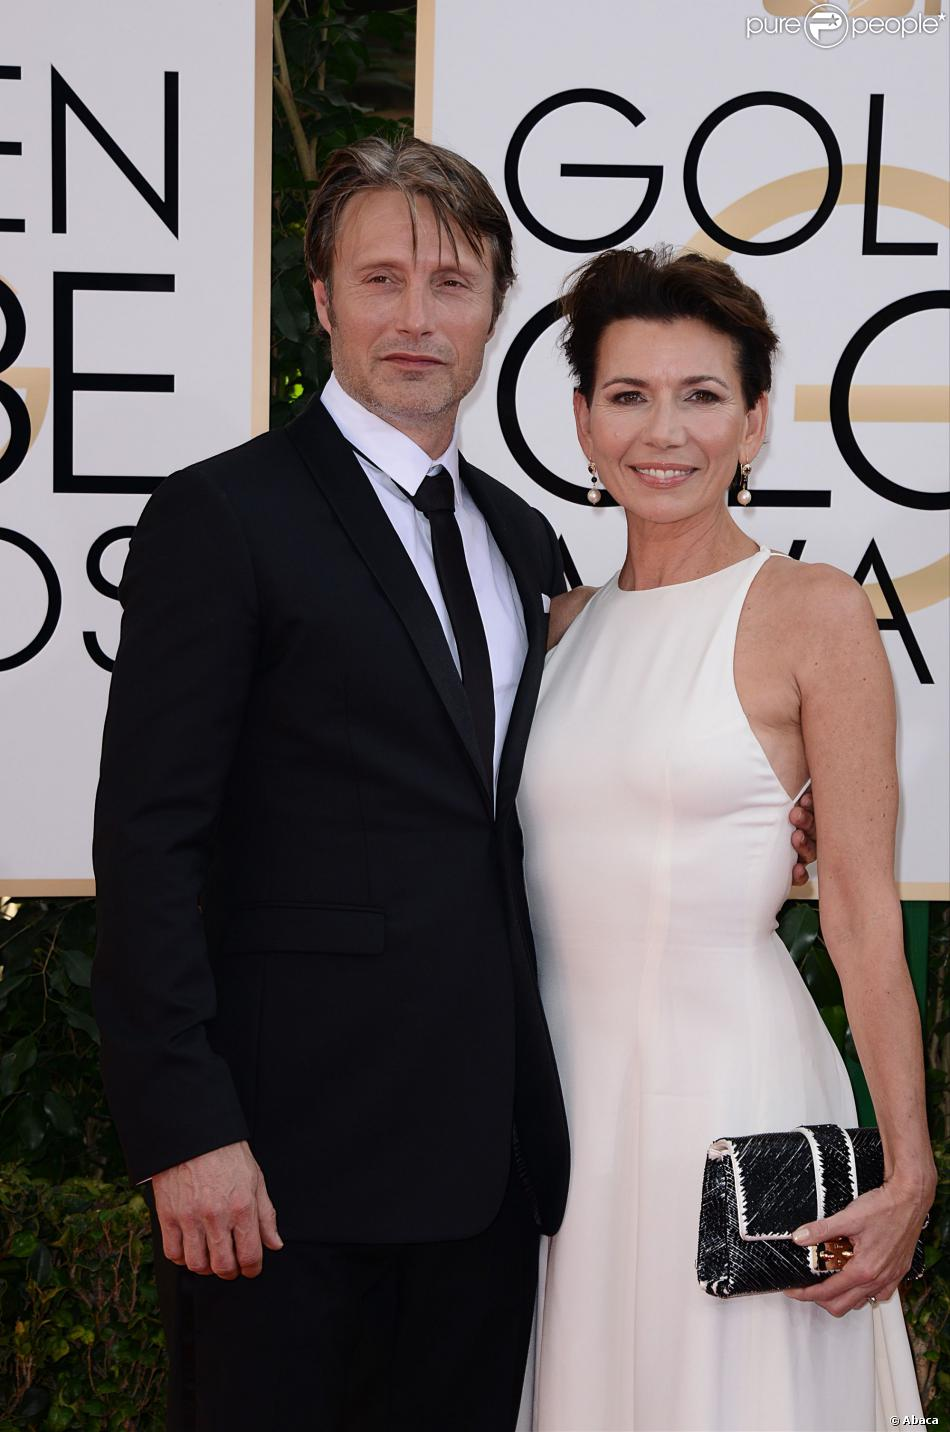 Mads Mikkelsen couple